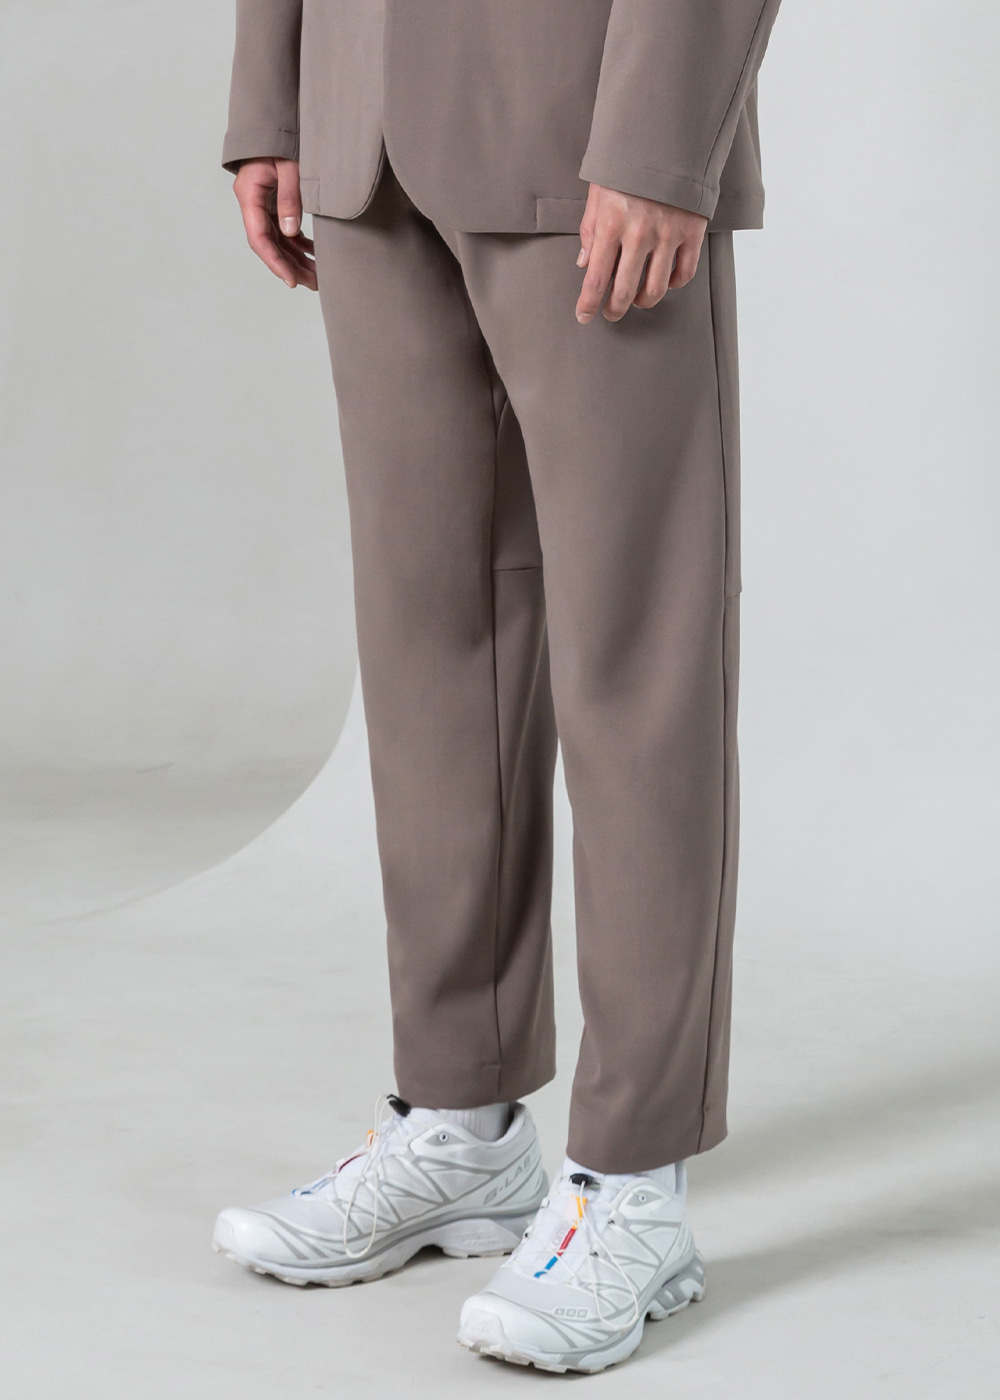 TECHNICAL PANT #1.5 CLAY